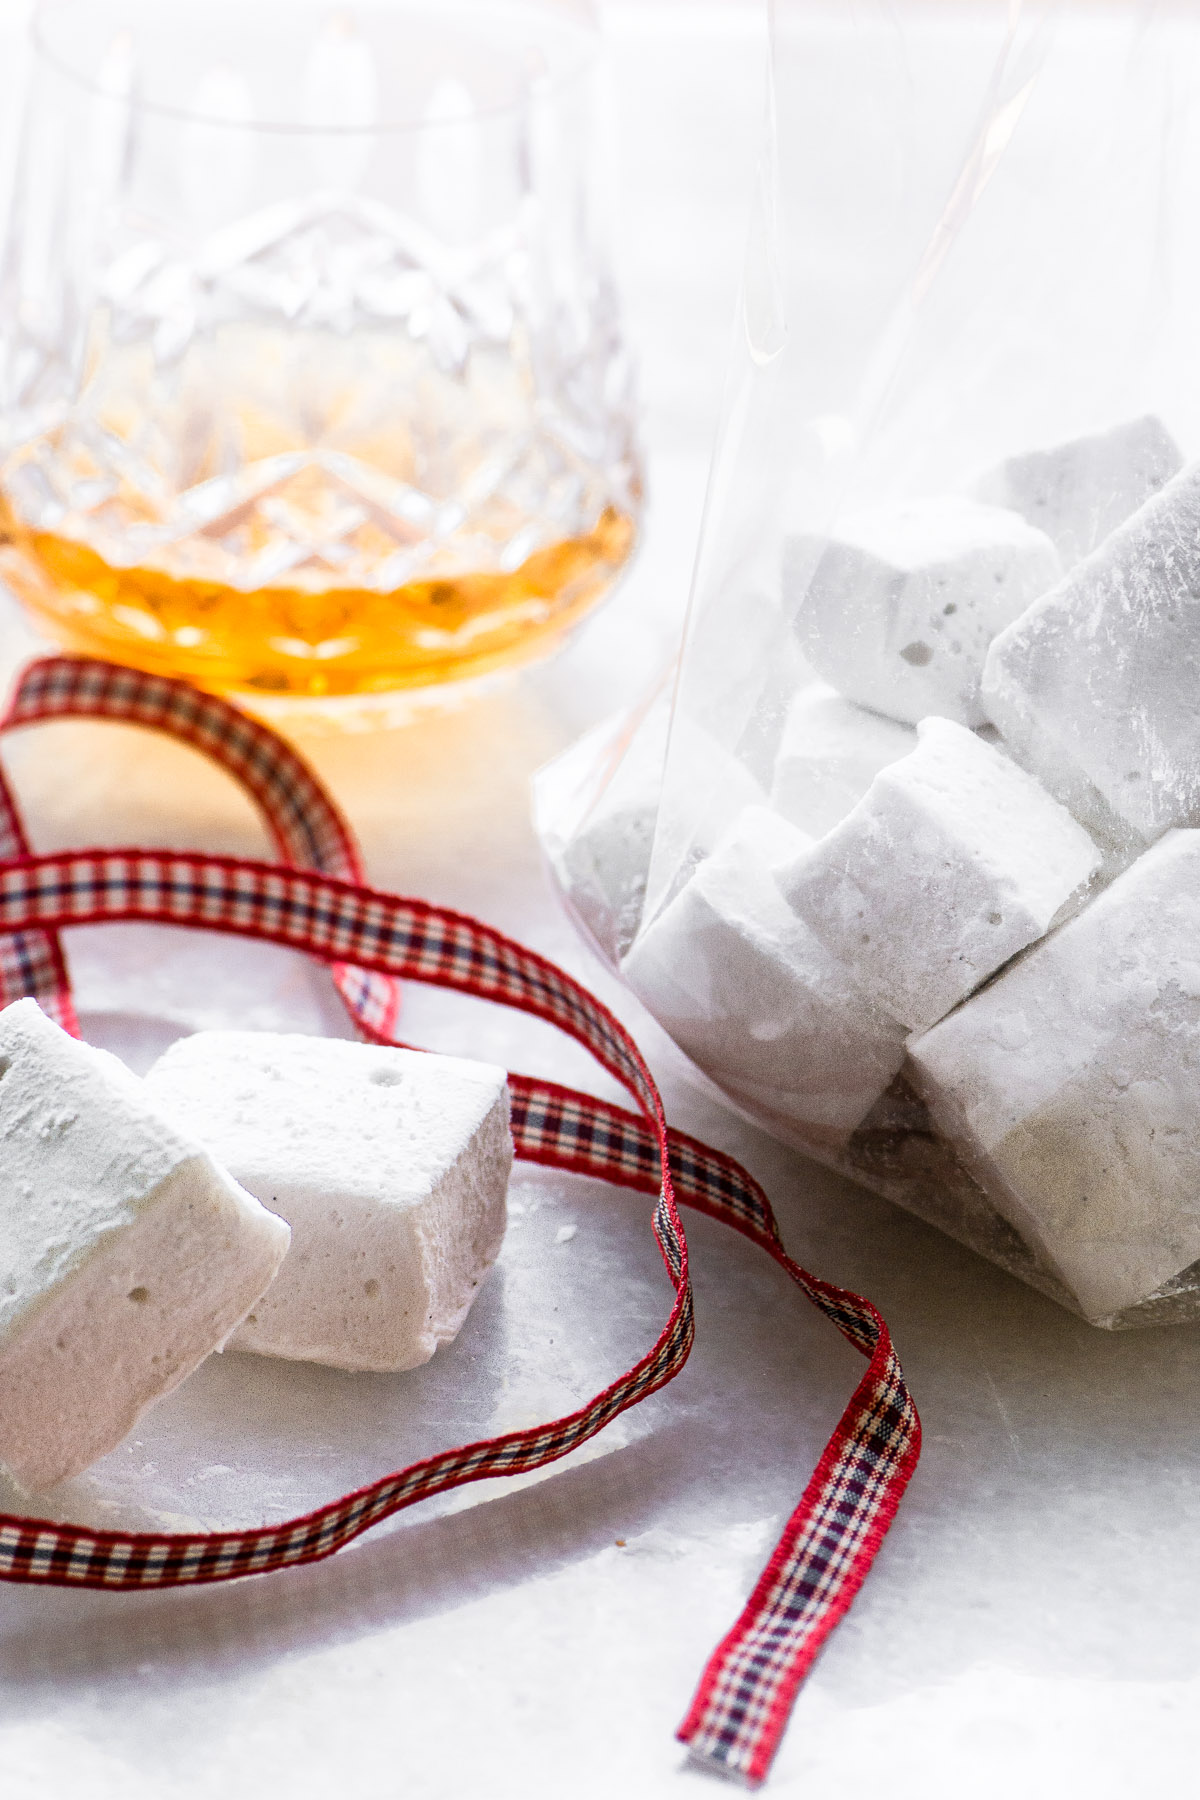 Homemade Bourbon Marshmallows with a glass of bourbon